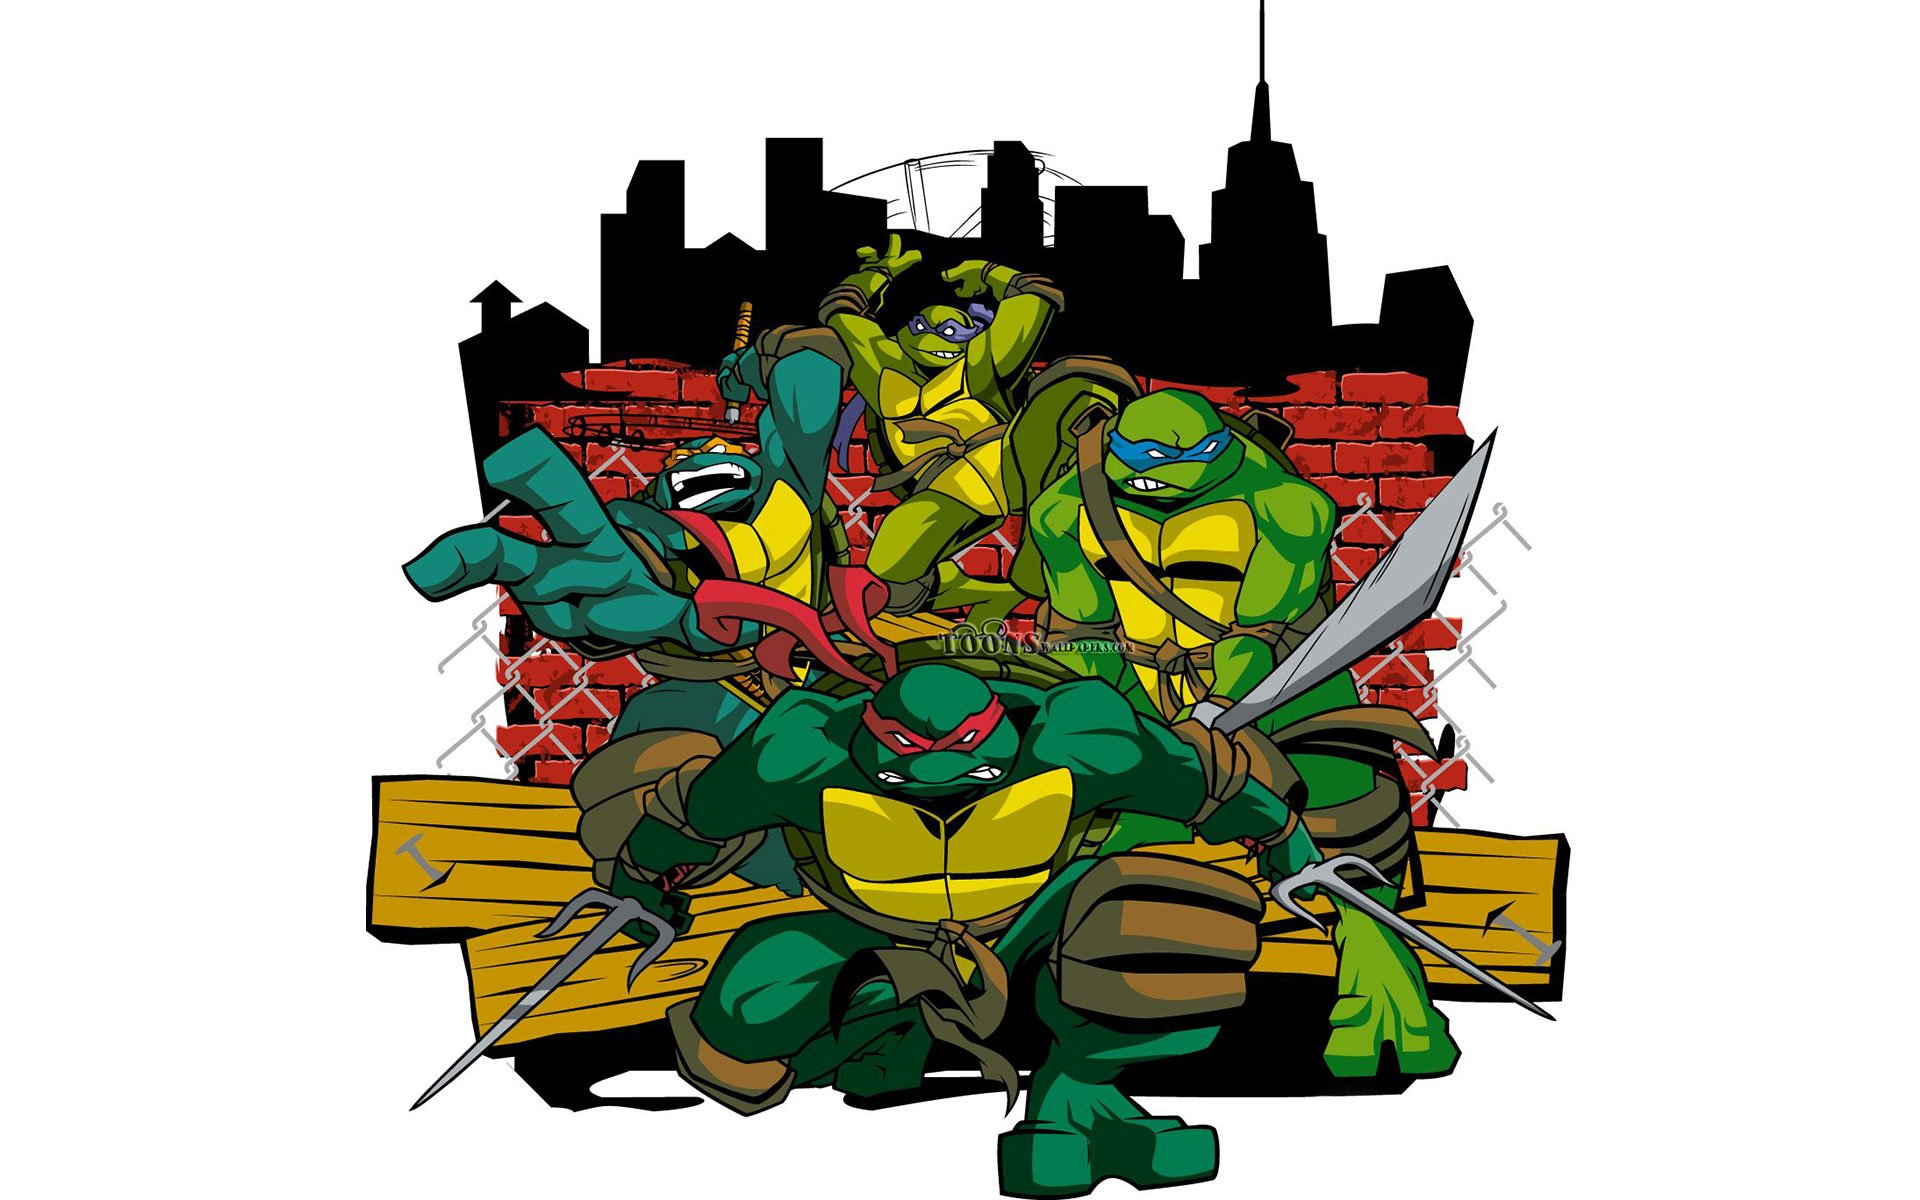 Free Download Desktop Ninja Turtles Hd Wallpapers 1920x1200